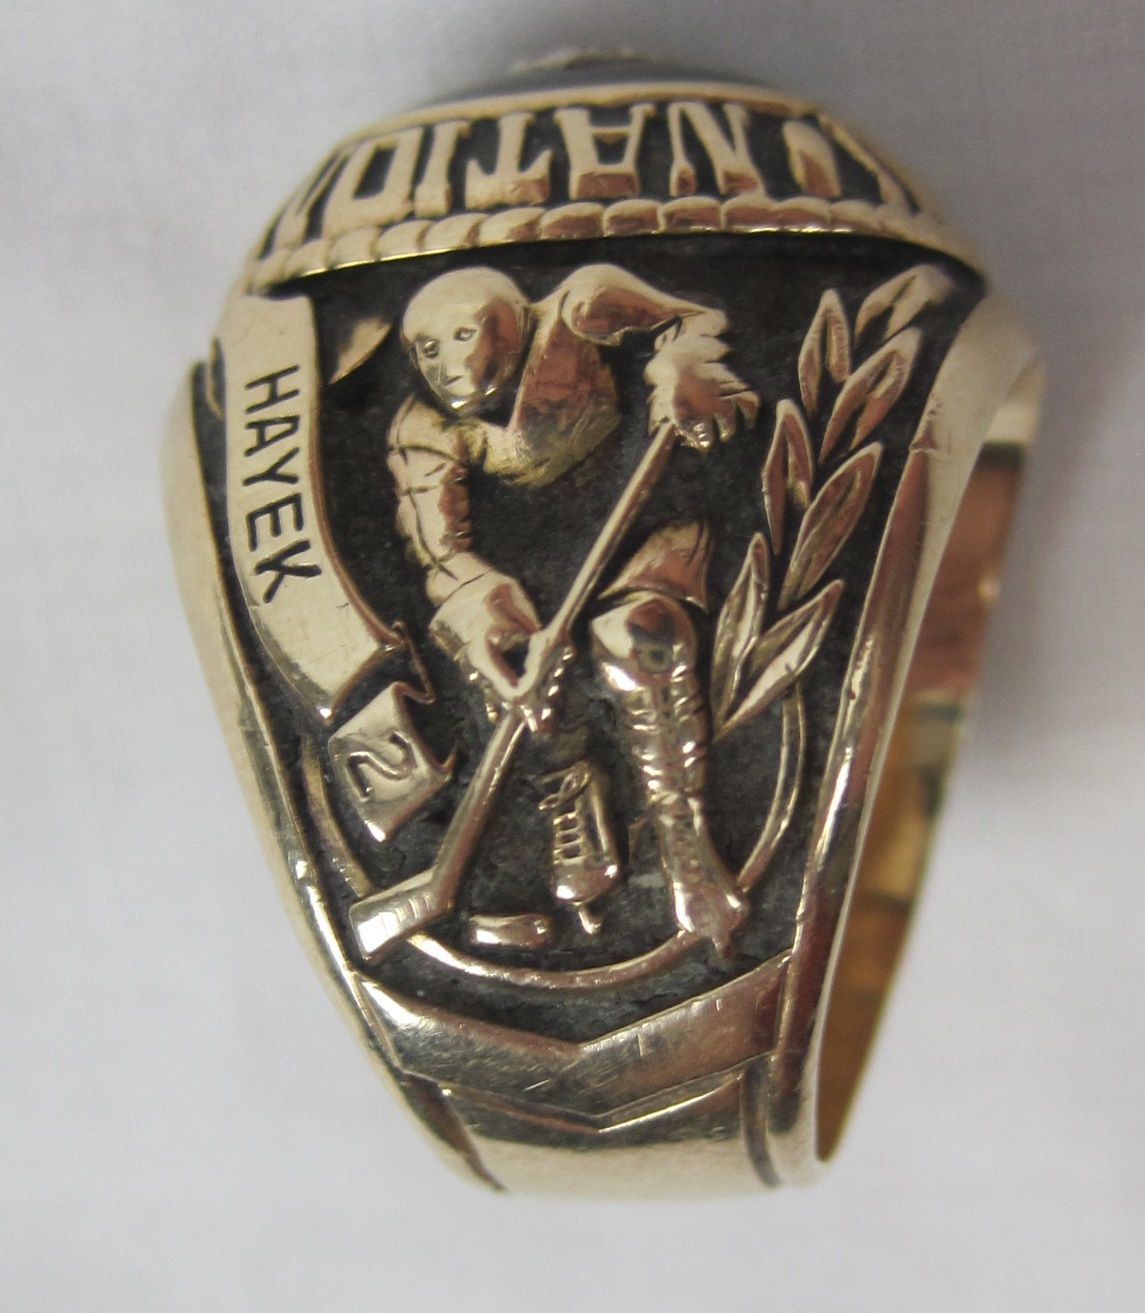 syracuse ring lot detail lg ncaa bing dave loa rings championship